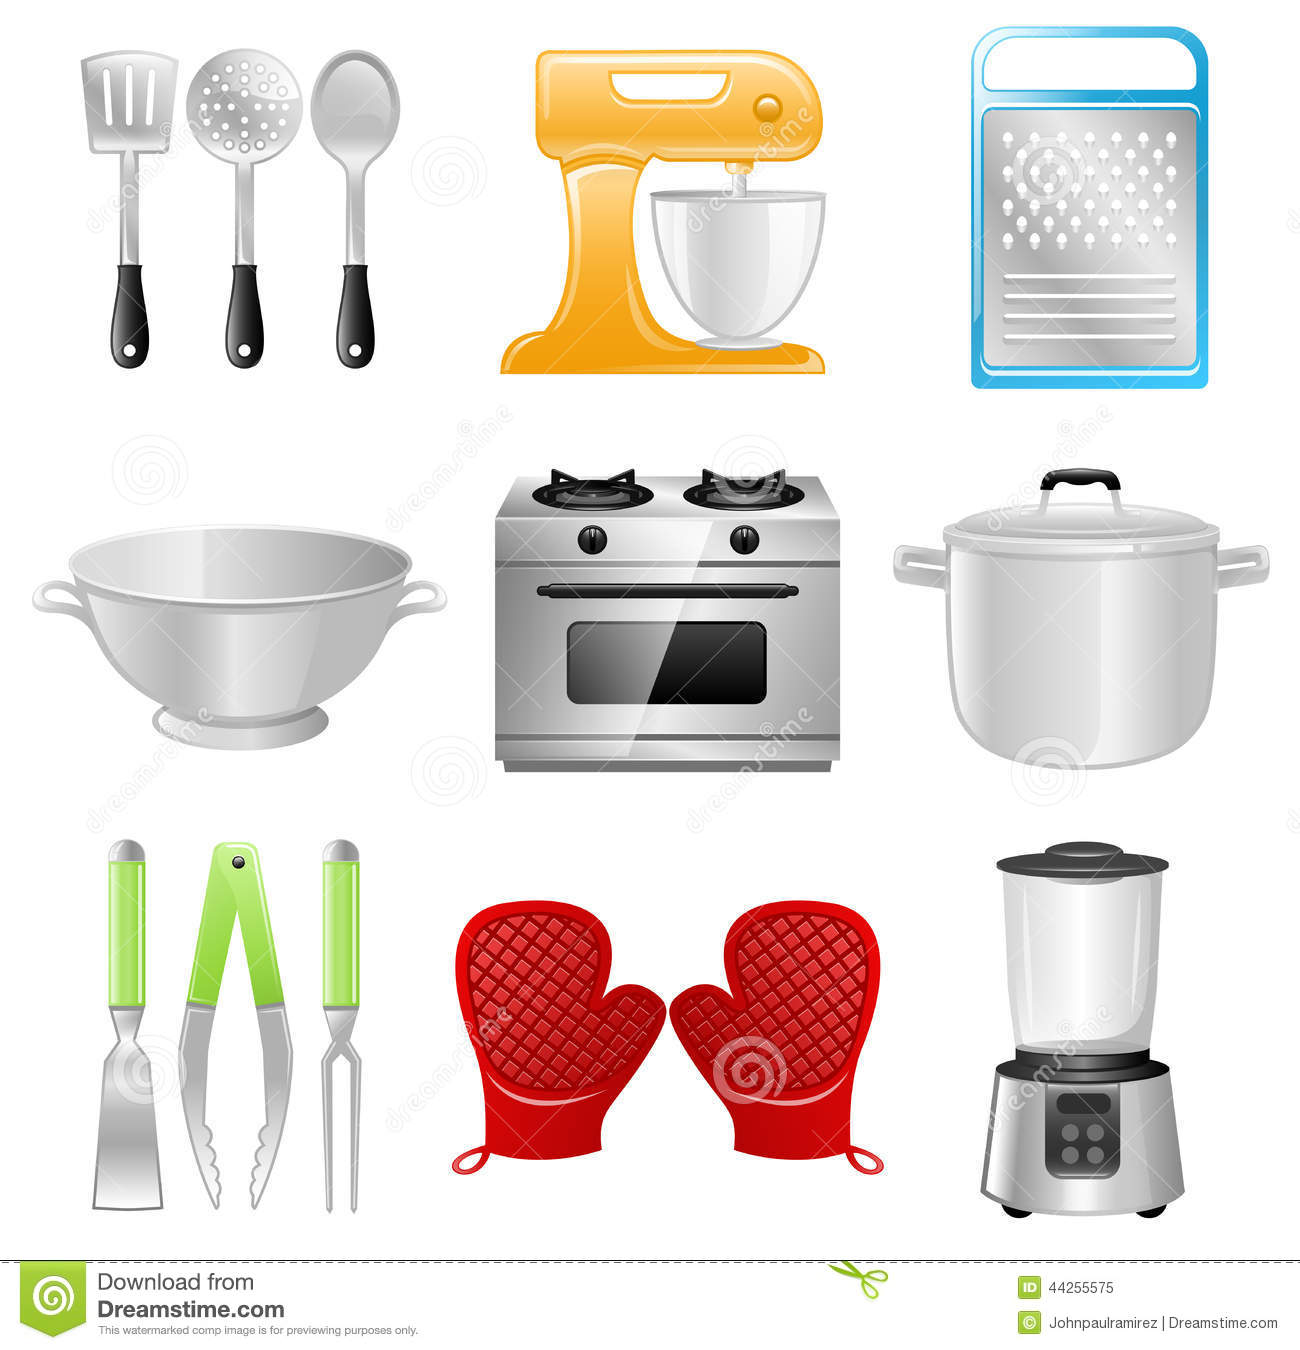 Uncategorized Kitchen Utensils And Appliances kitchen utensils cooking restaurant stock vector image 44255575 royalty free vector